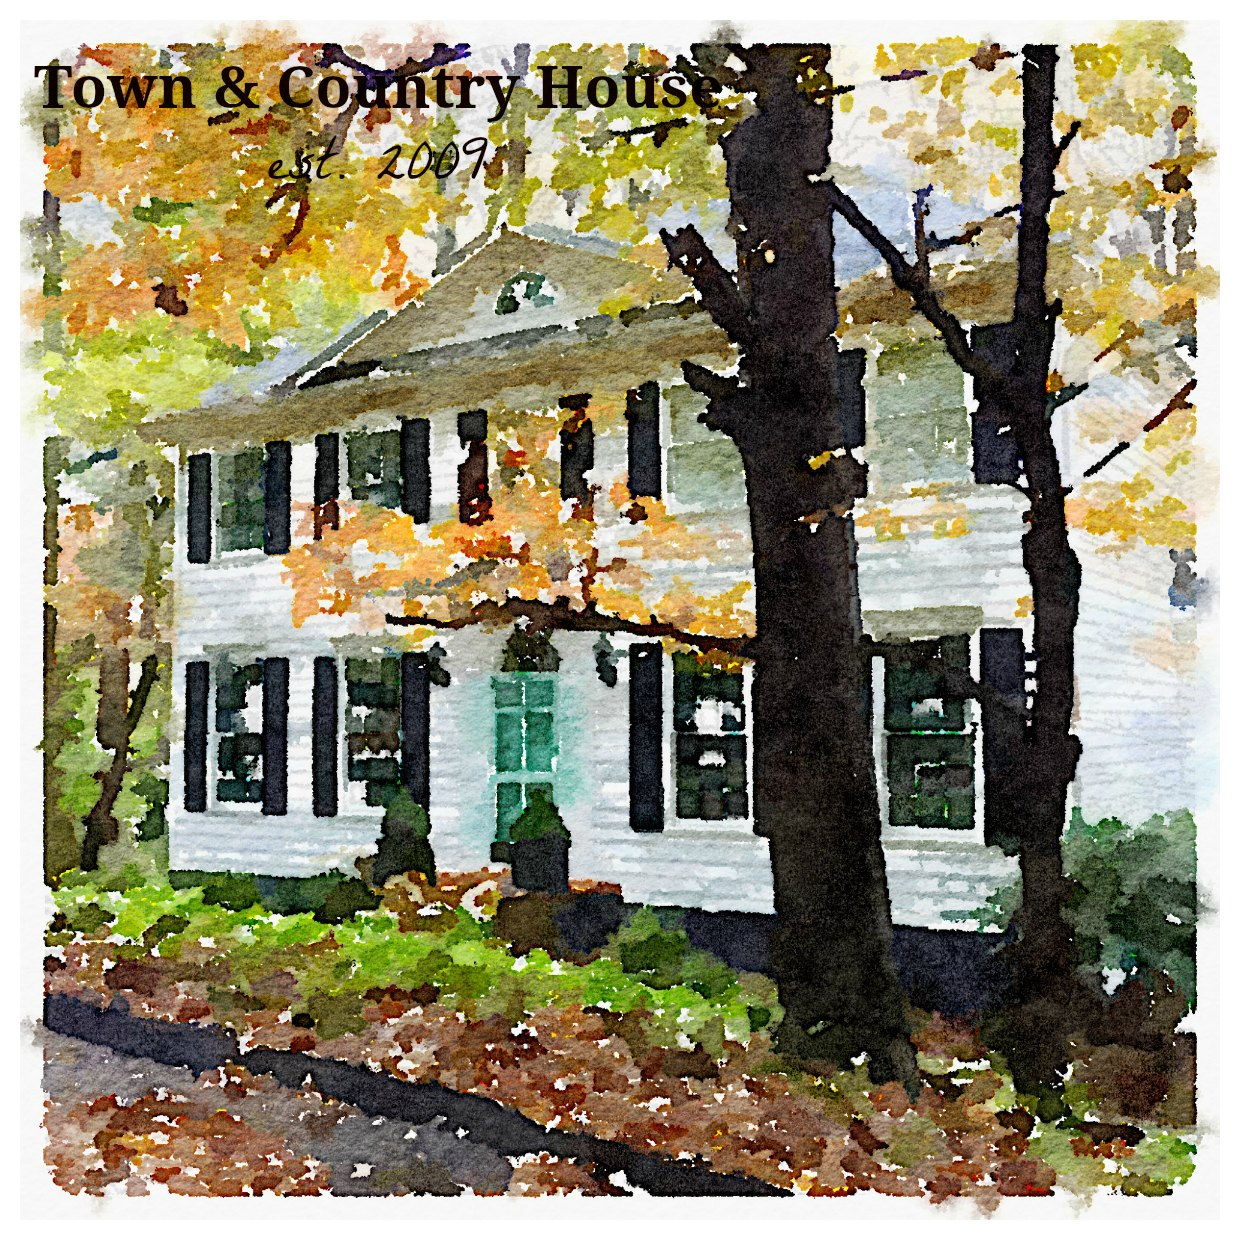 Town and Country House